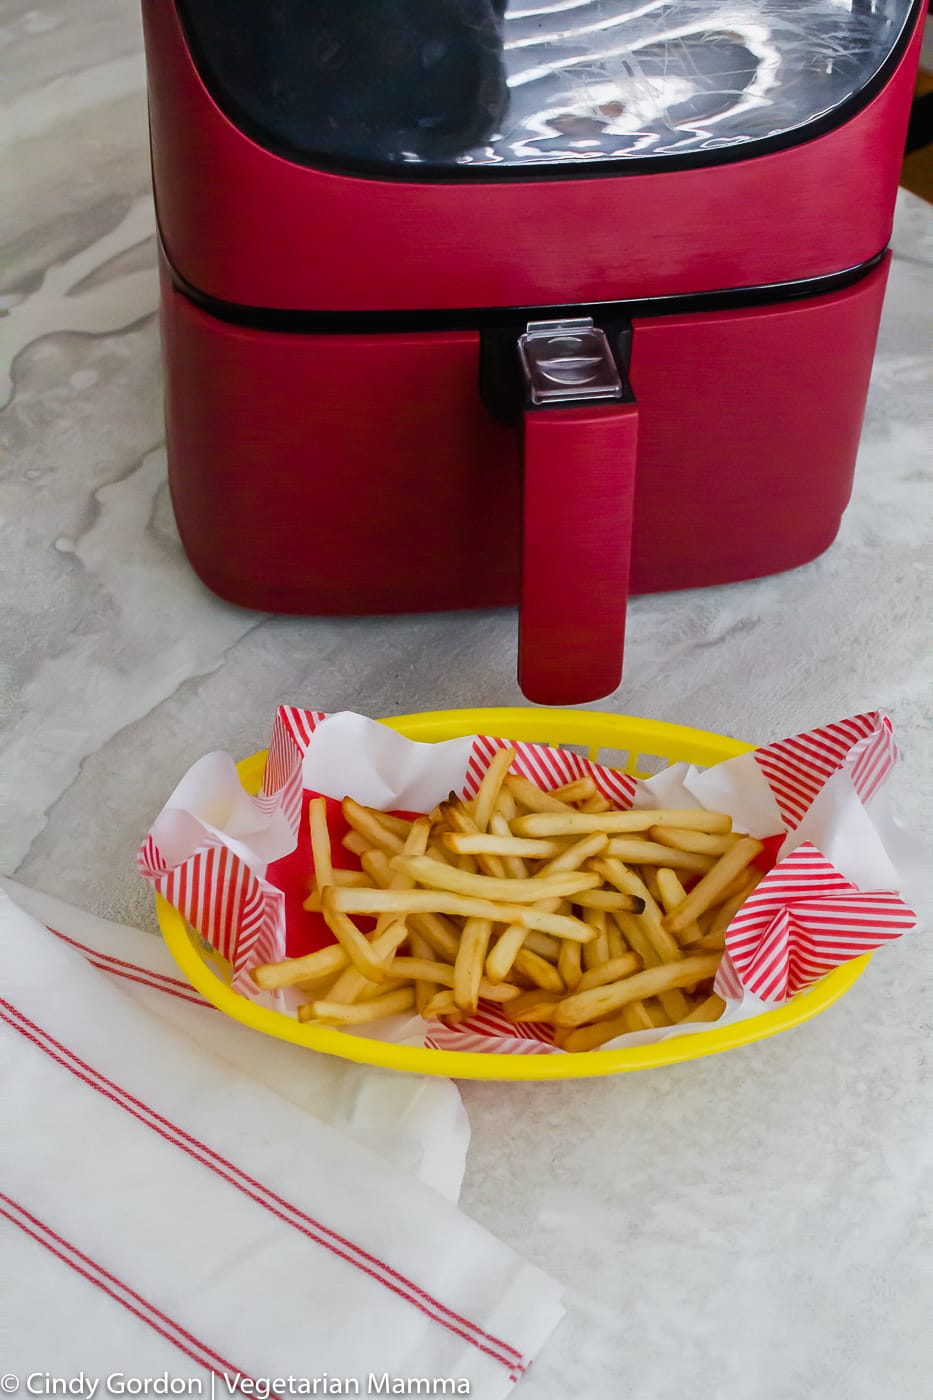 Air Fryer Frozen French Fries vertical photo showing red air fryer and cooked french fries